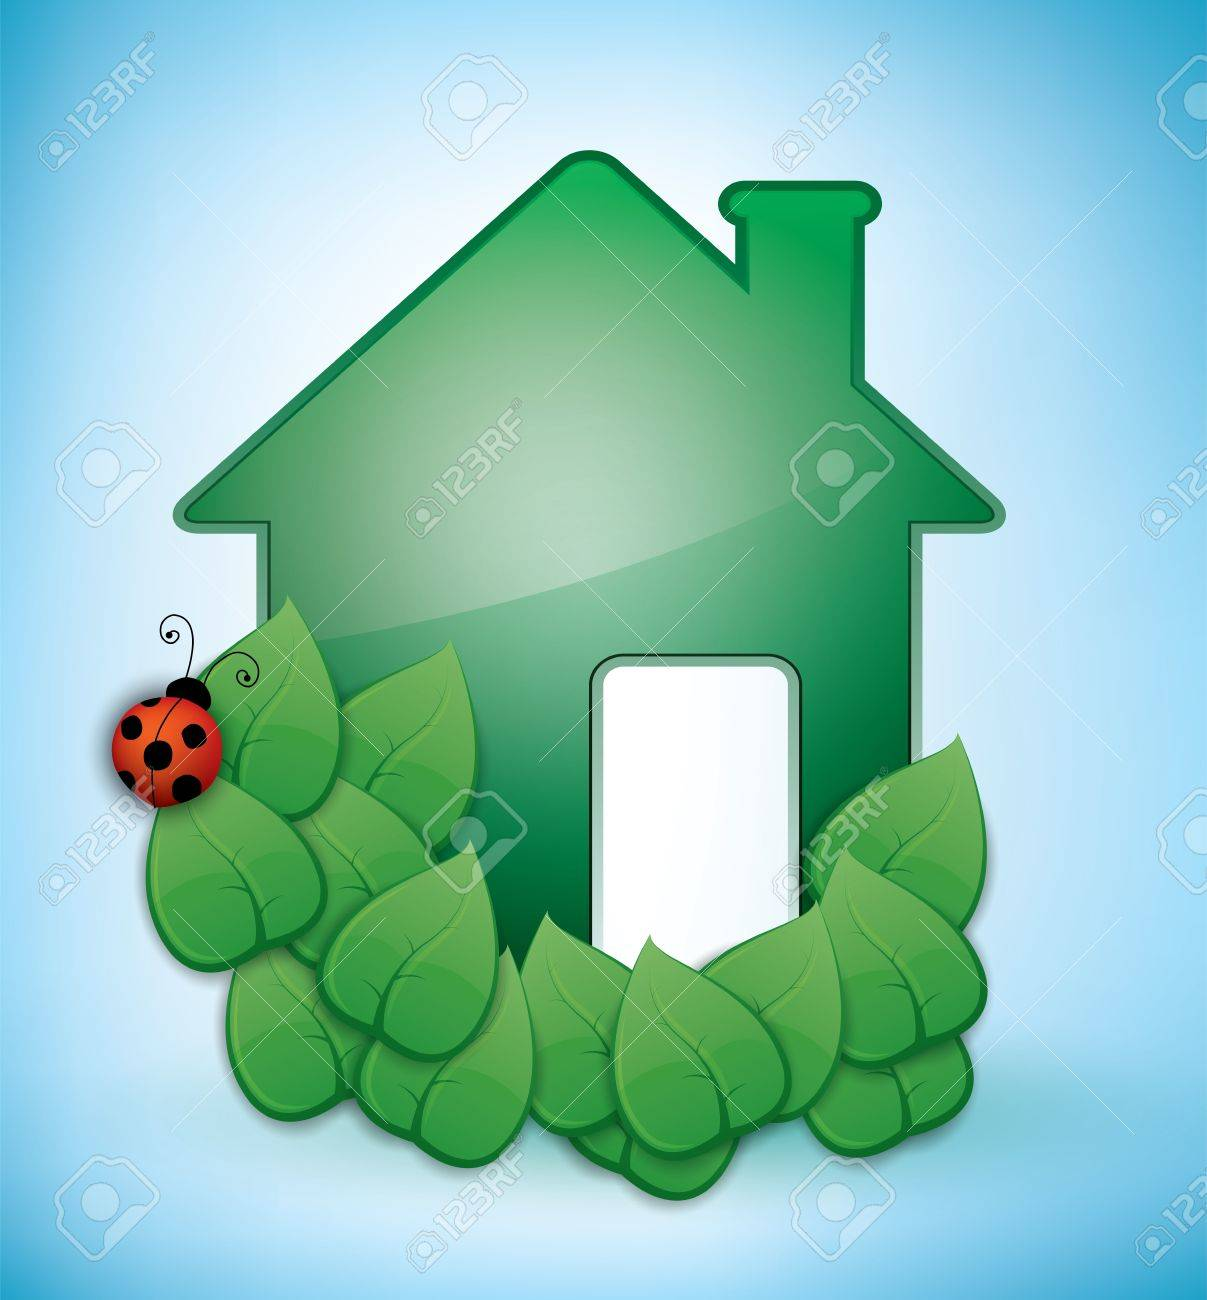 Eco Friendly Construction Green Eco Friendly House Illustration With Leaves And A Ladybird